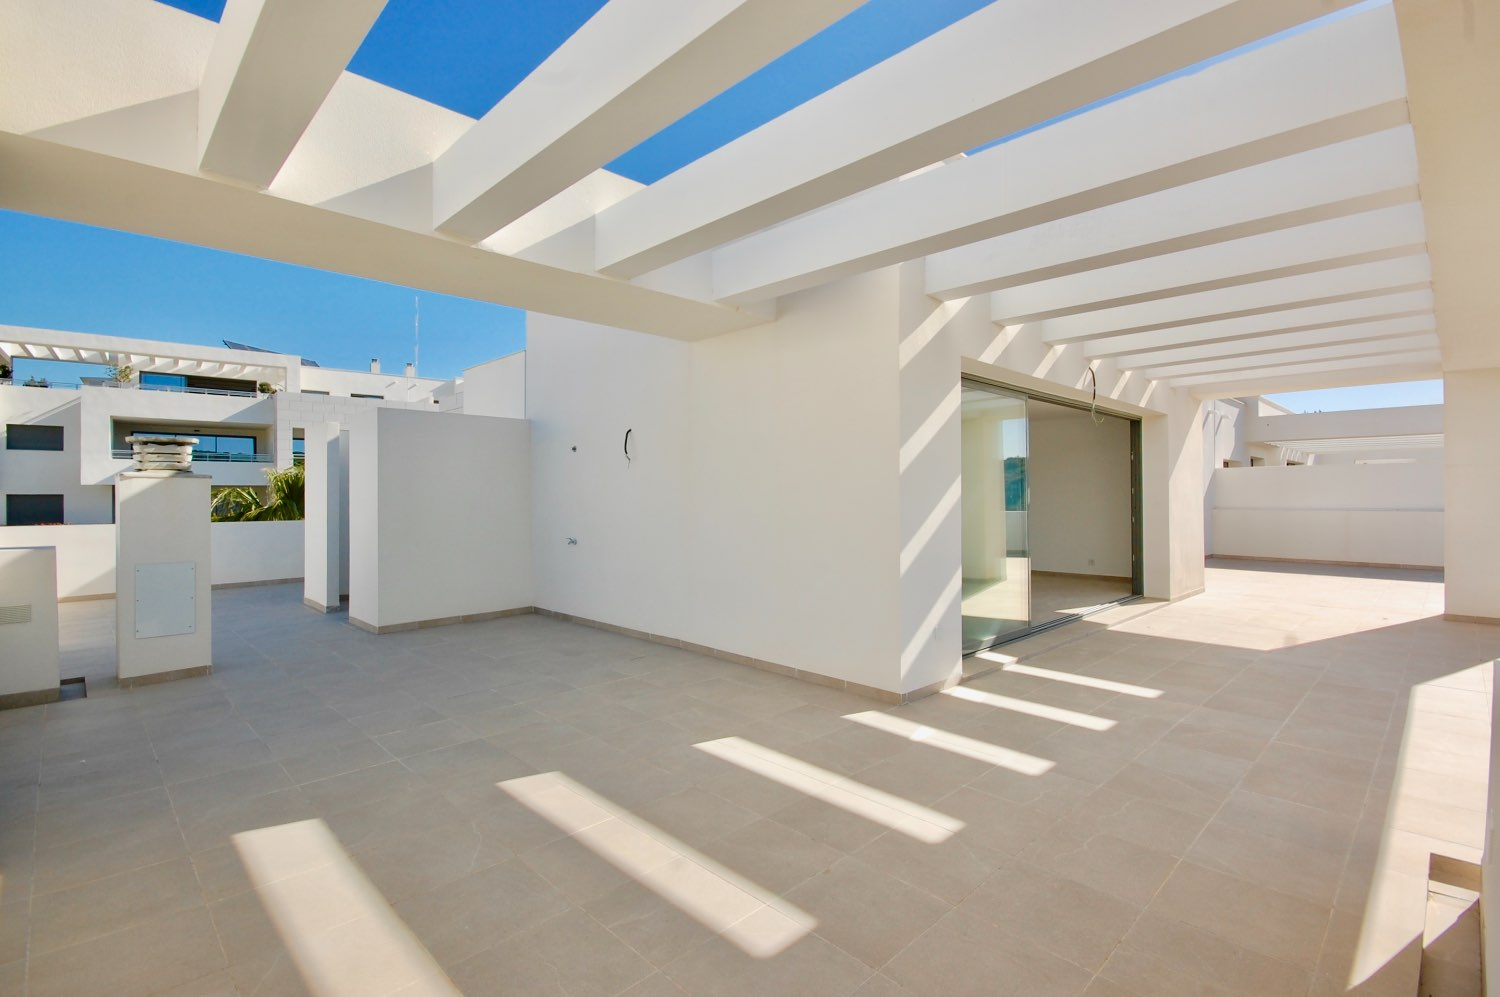 New penthouse for sale in Casares Golf - Casares - Costa del Sol